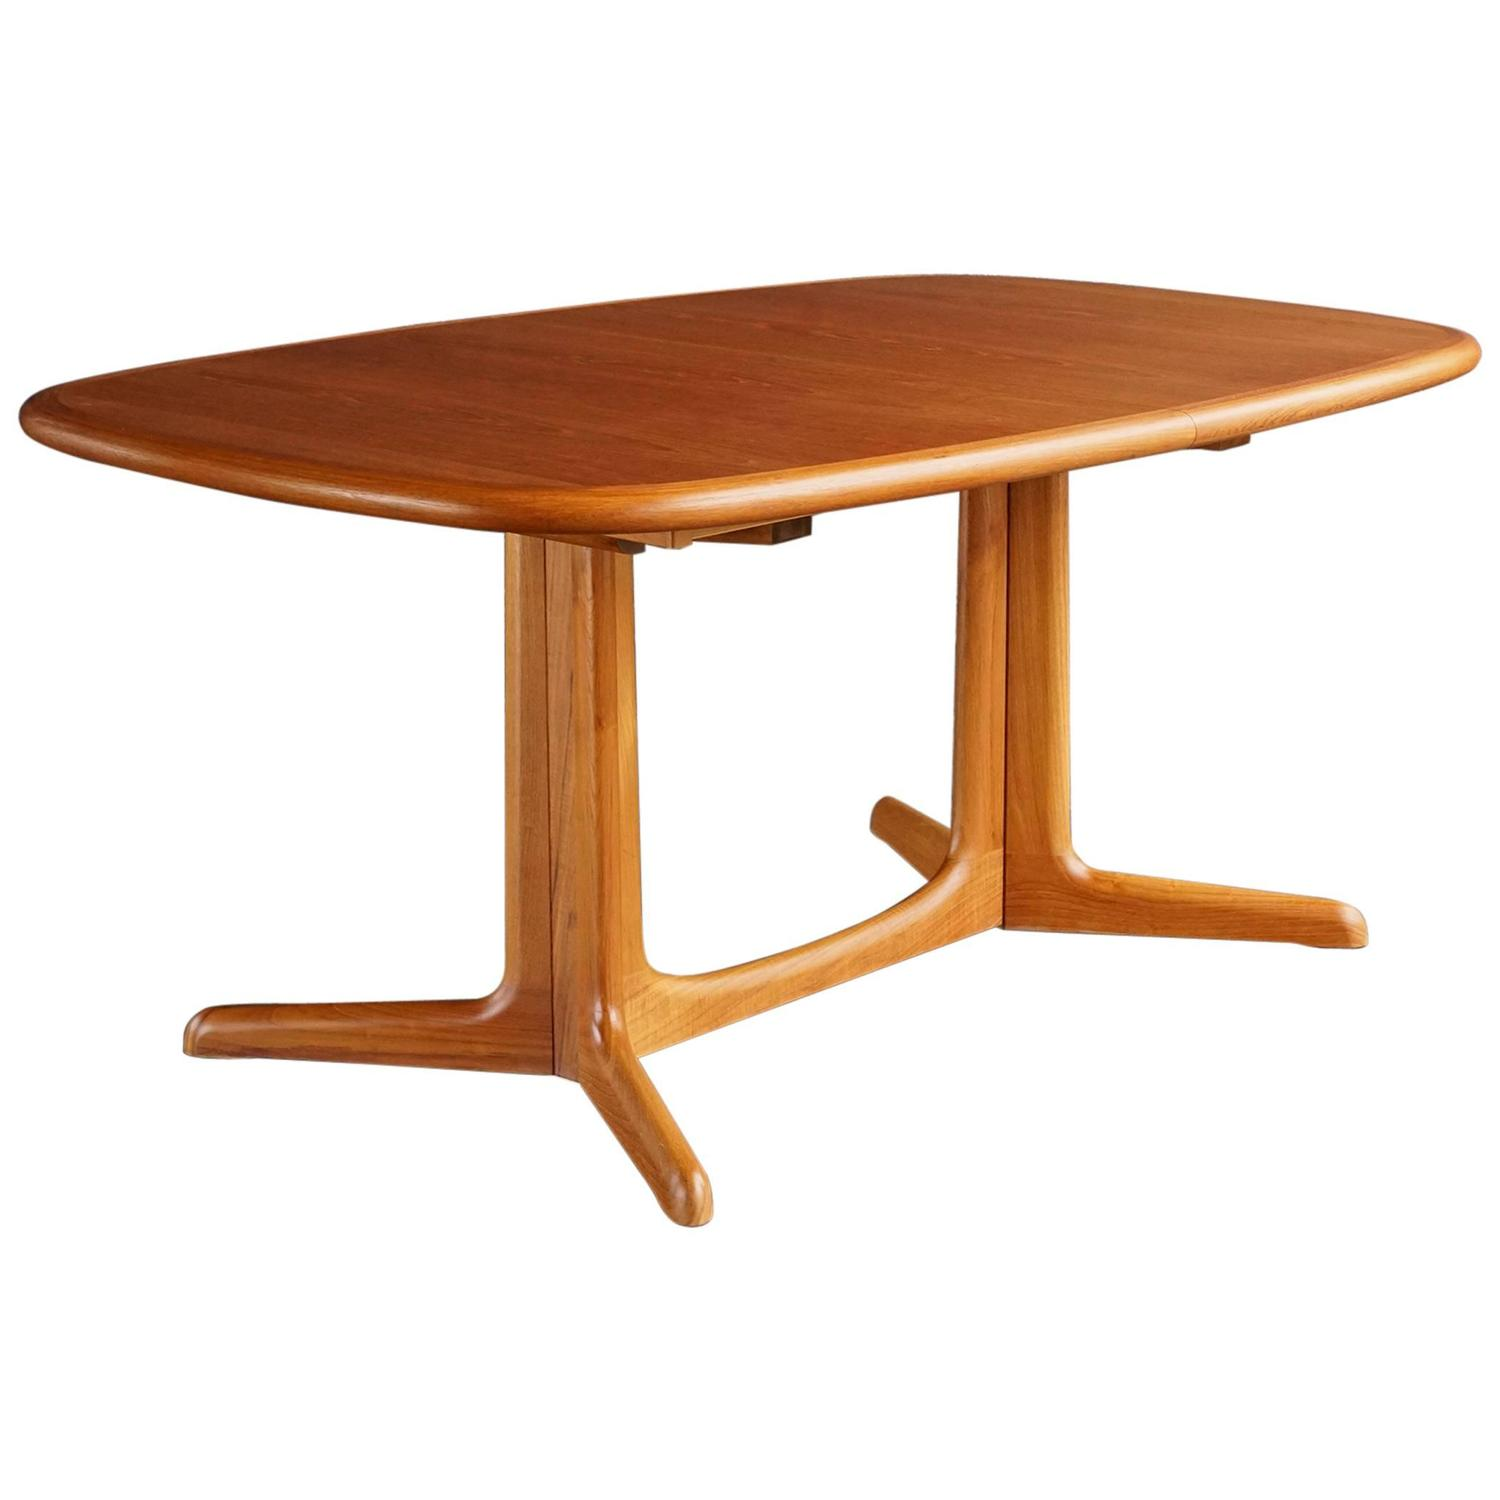 Danish extension dining table at 1stdibs Table extenders dining room